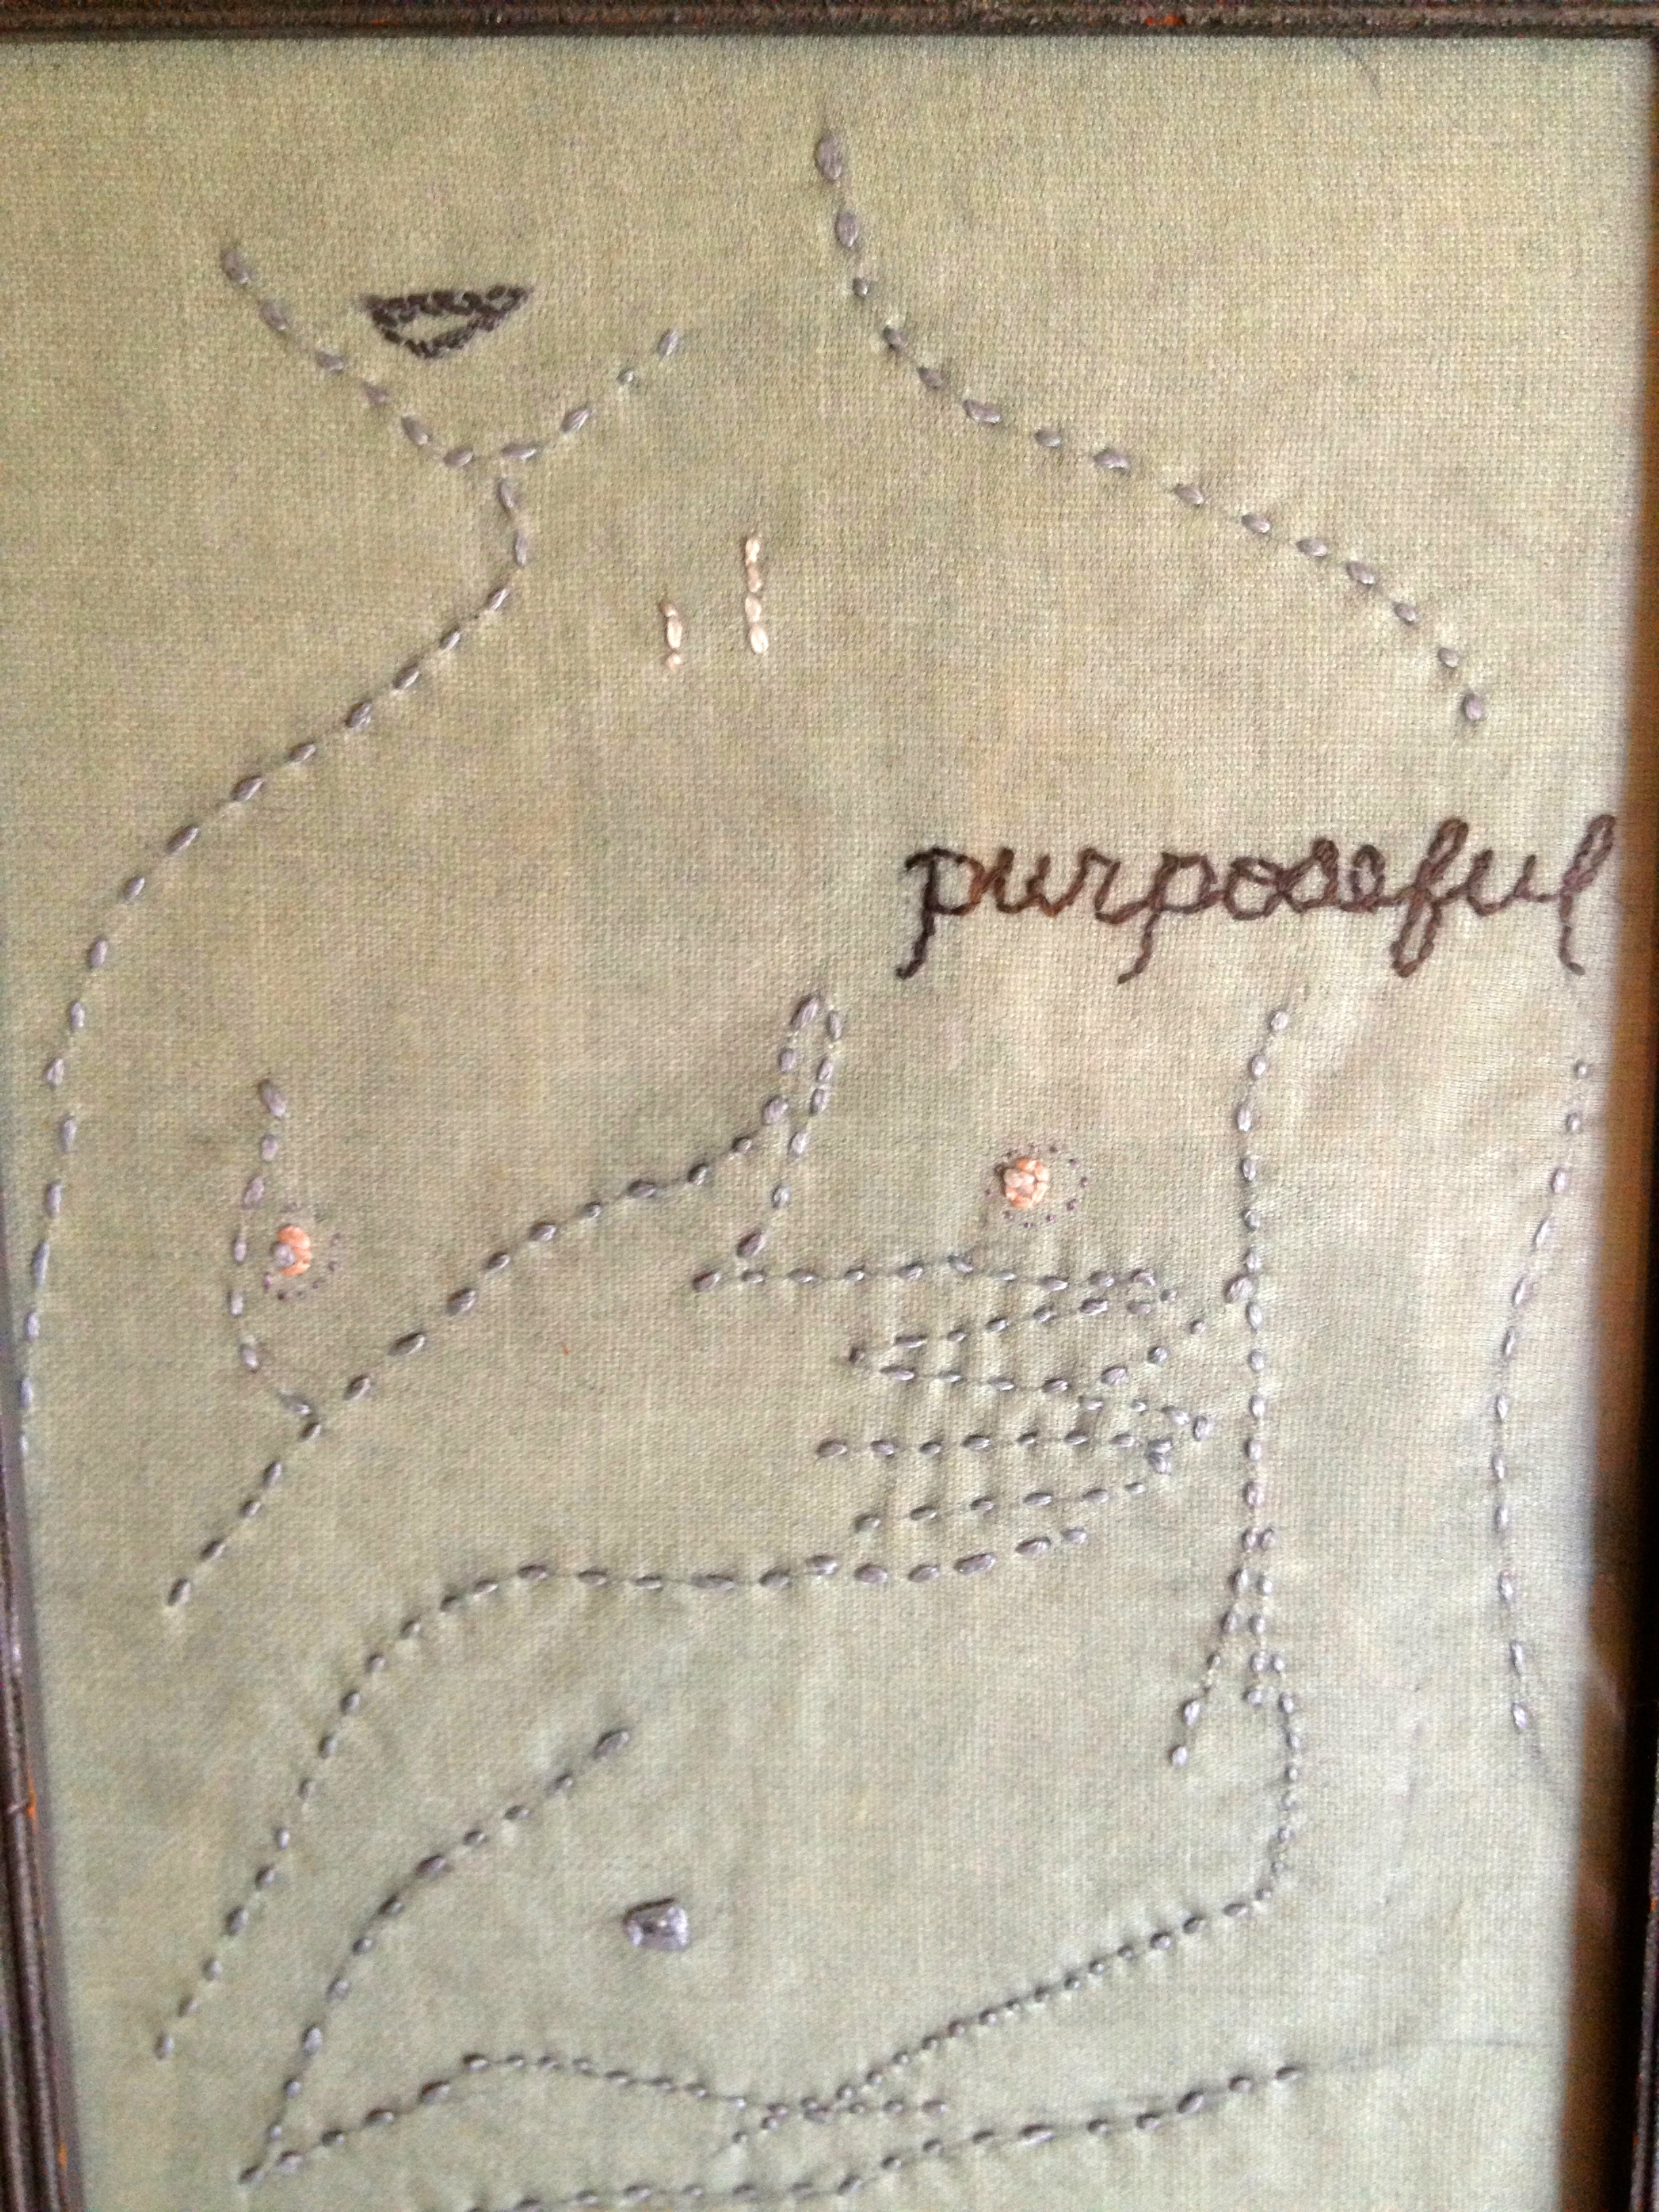 Purposeful